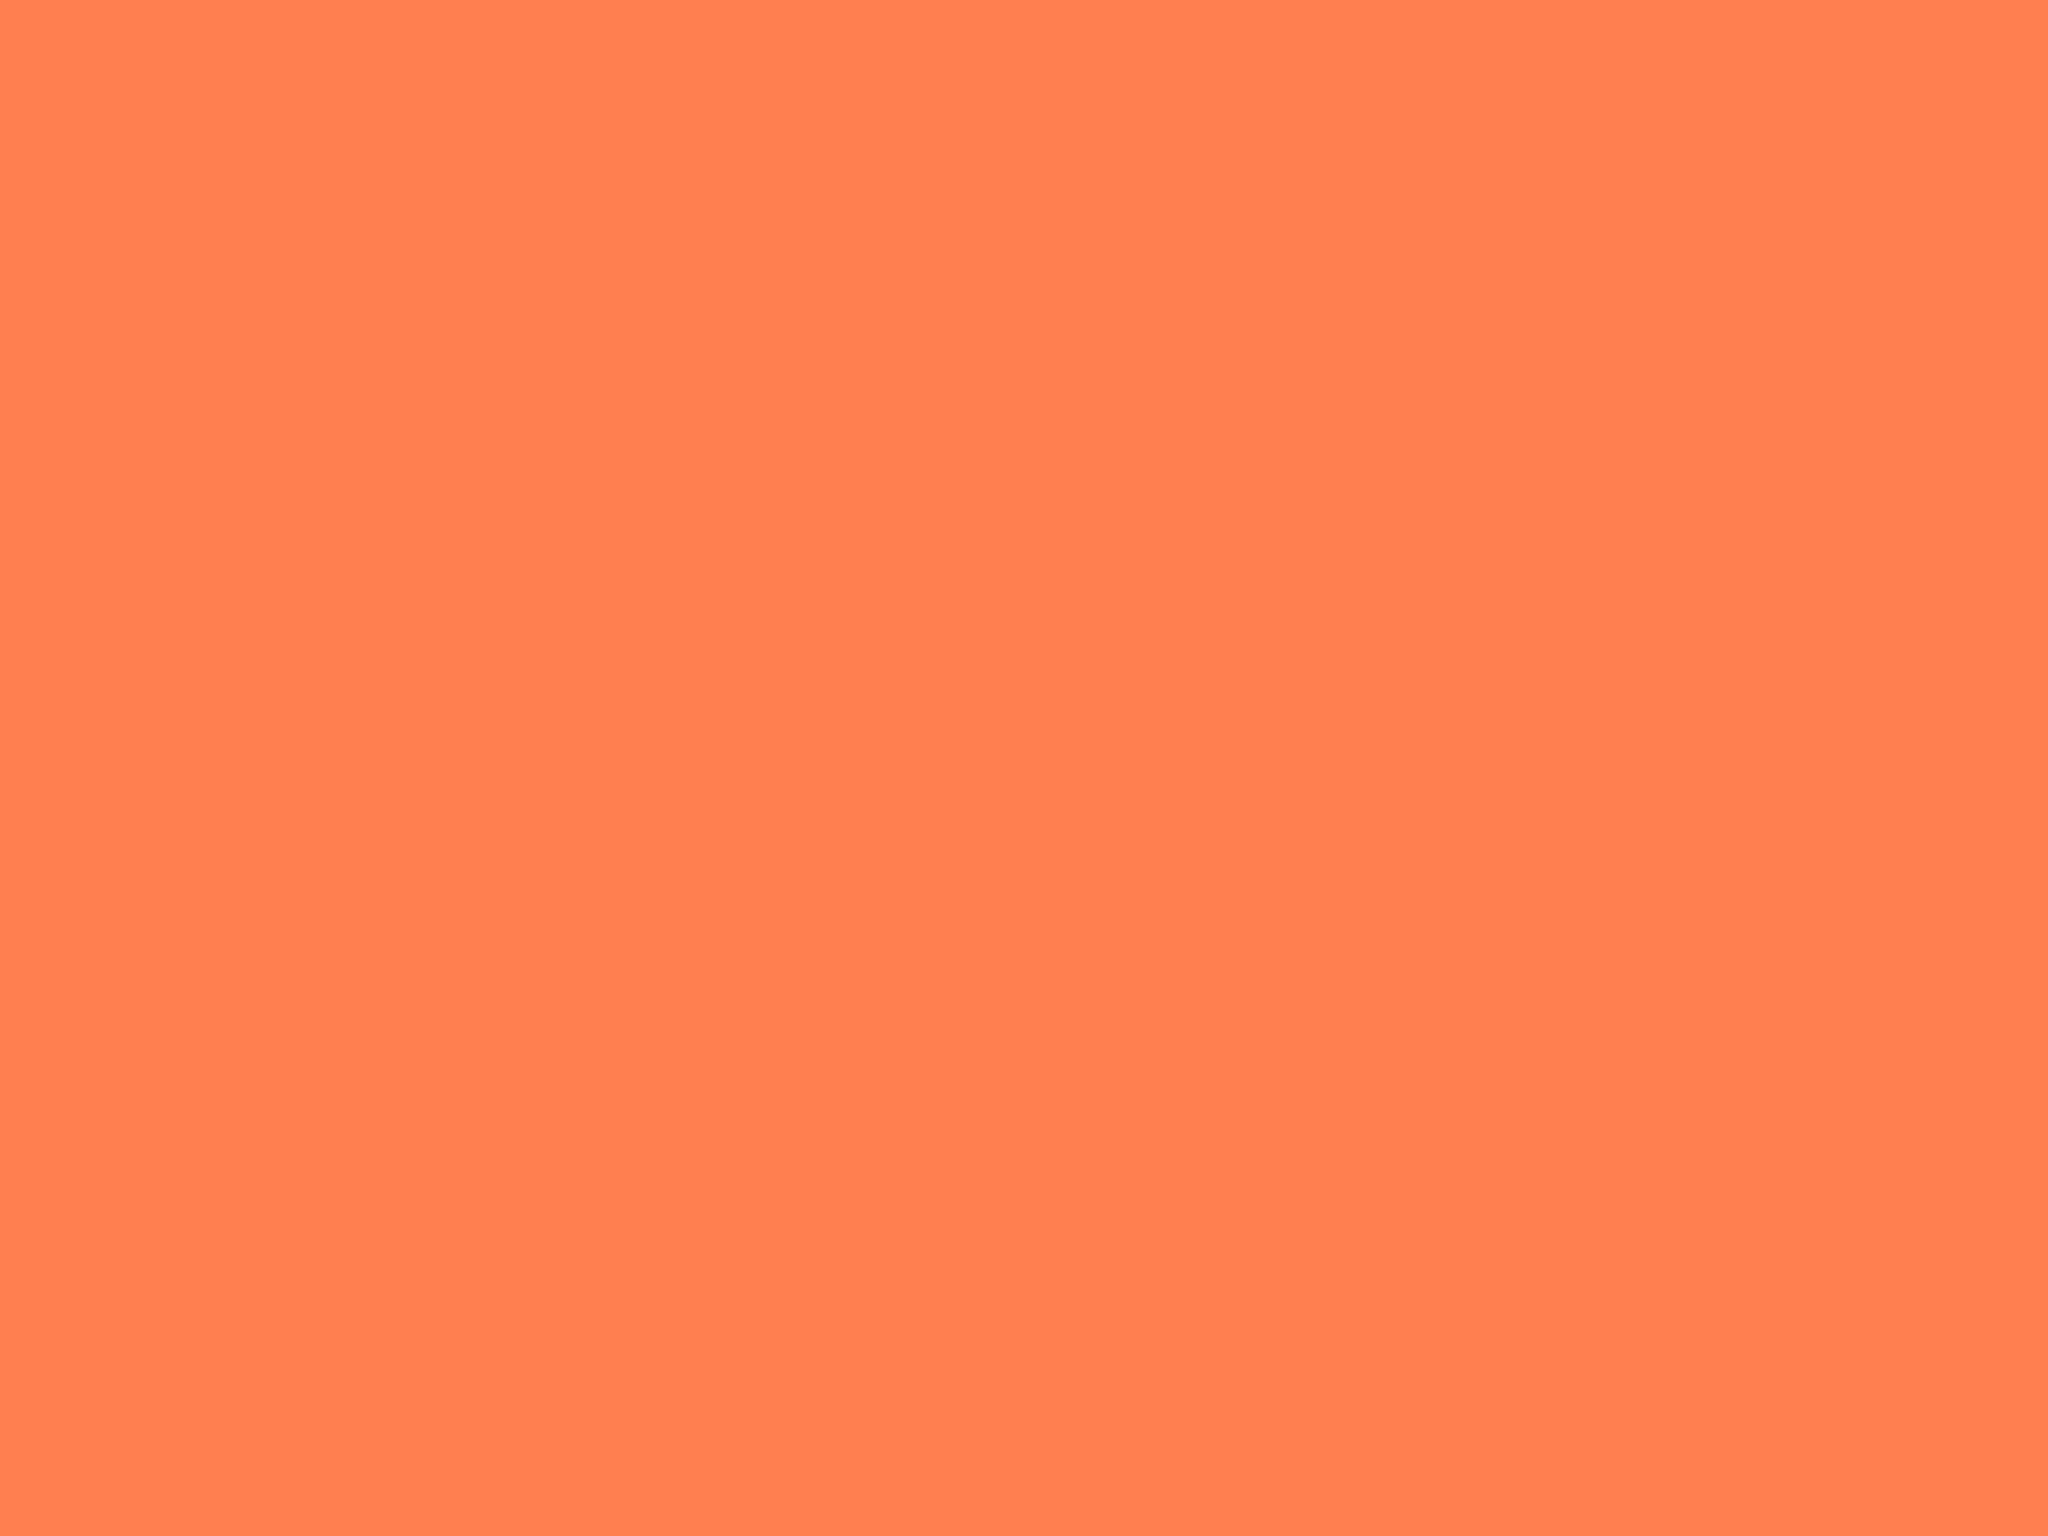 2048x1536 Coral Solid Color Background